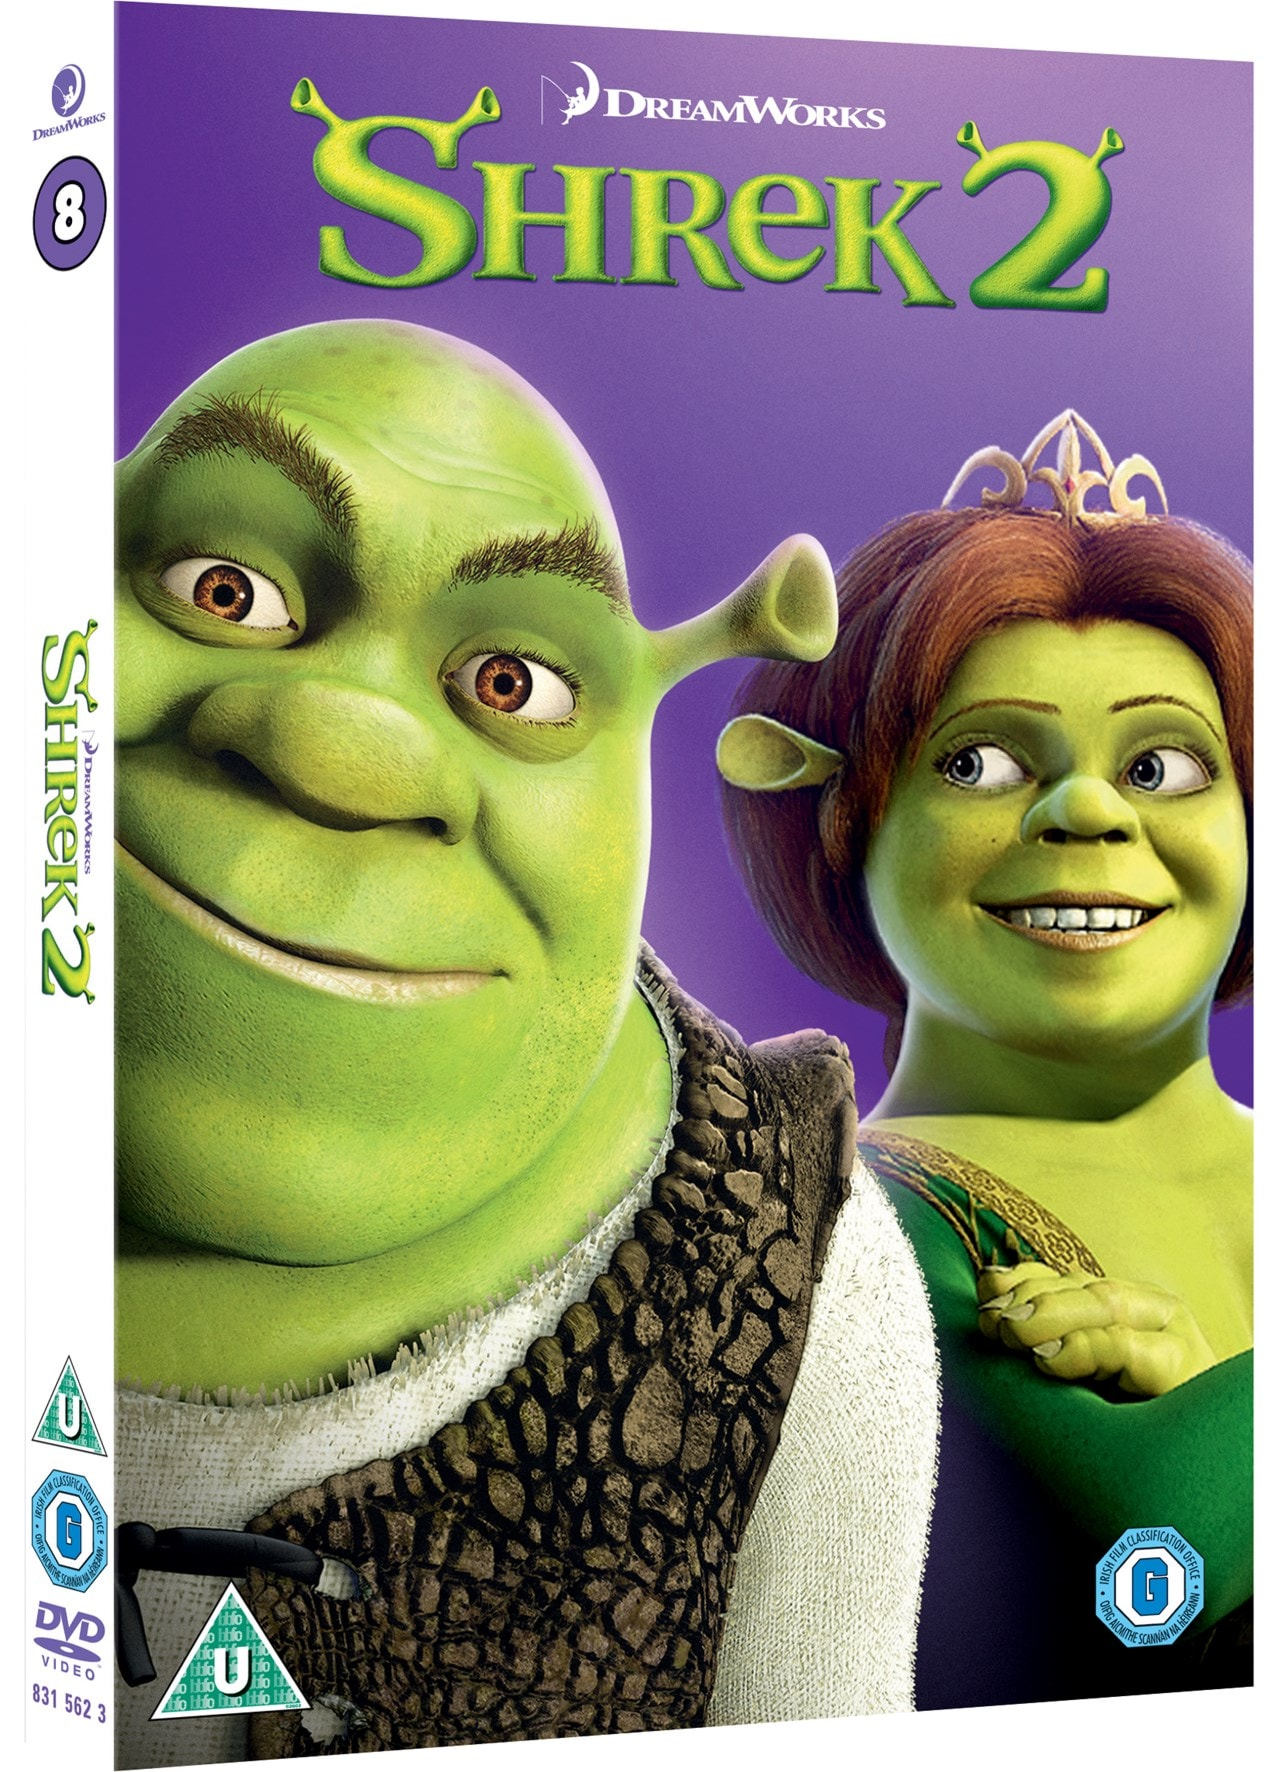 Shrek 2 | DVD | Free shipping over £20